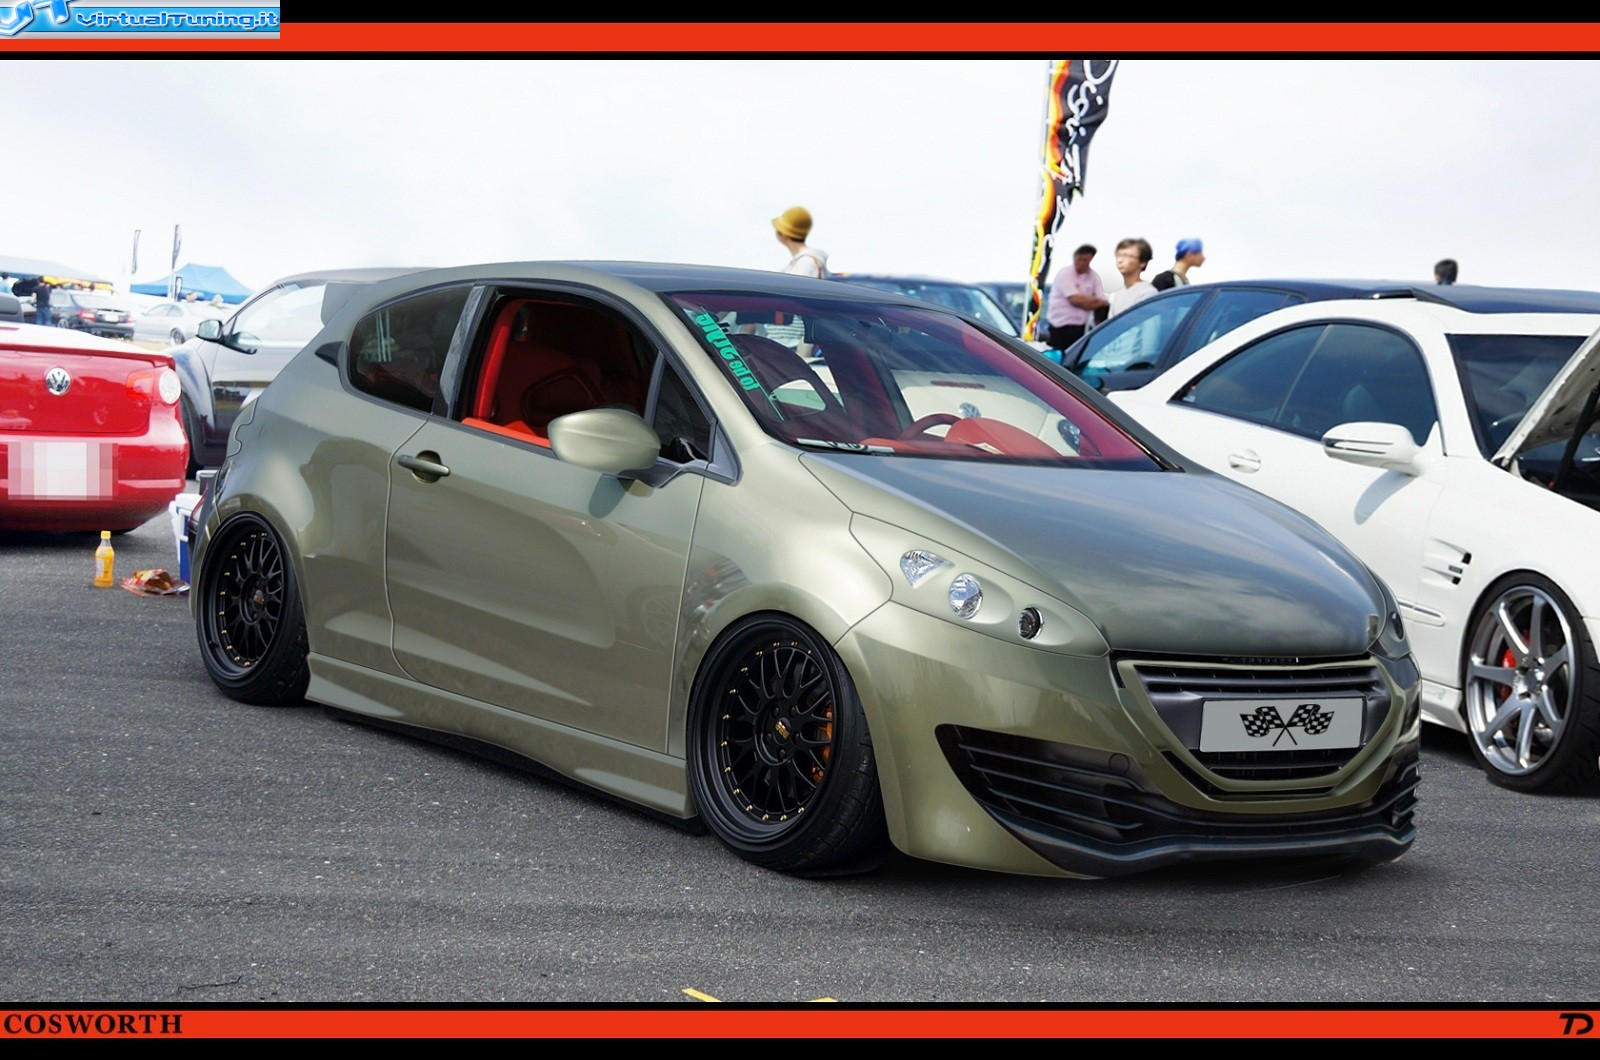 peugeot 208 cosworth rt208 by car passion. Black Bedroom Furniture Sets. Home Design Ideas